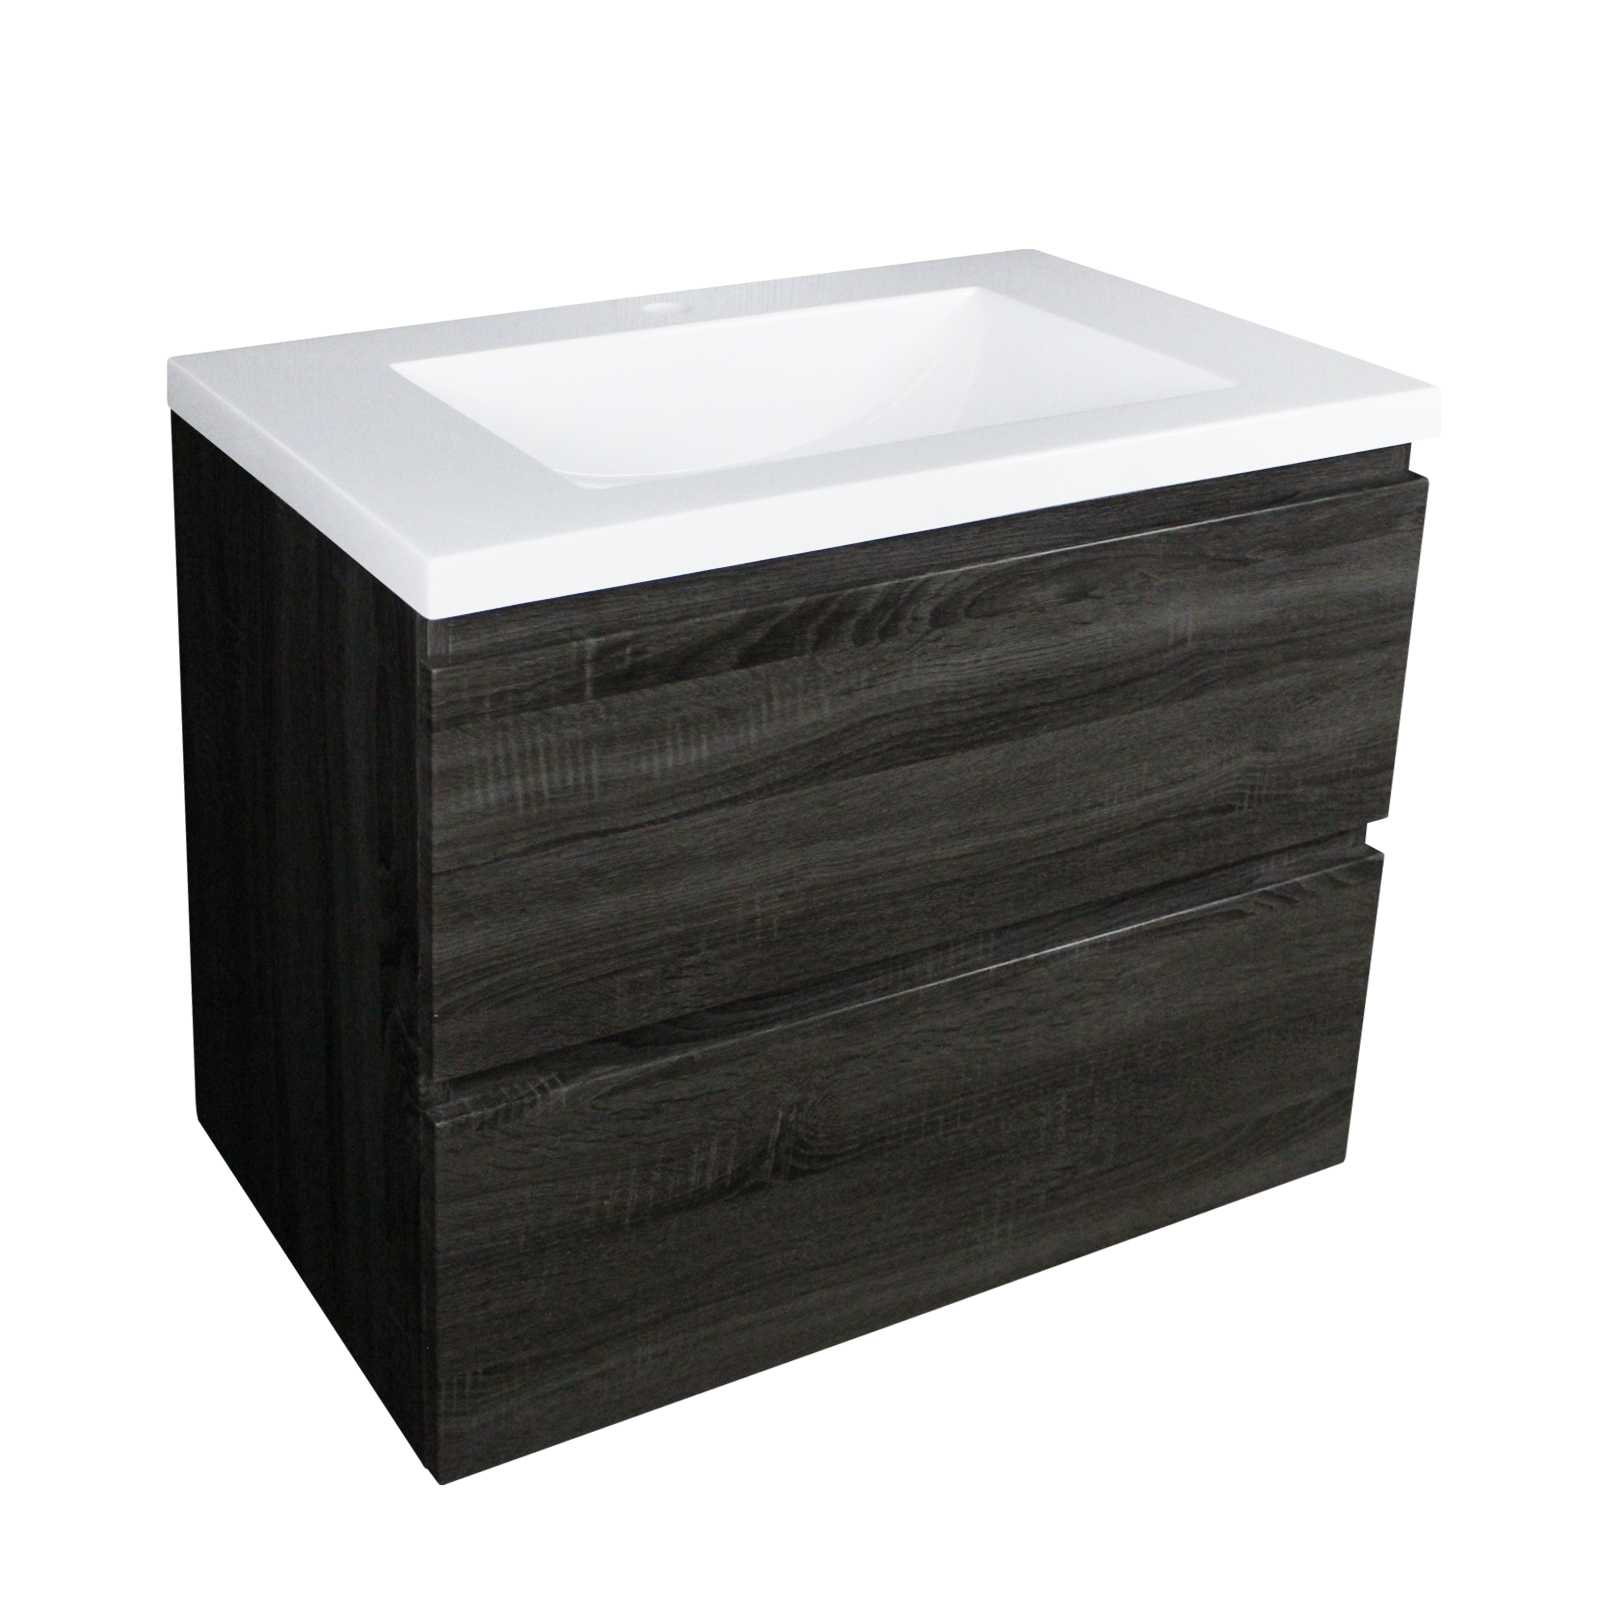 750mm Dark Grey Wood Grain Wall Hung Drawer Vanity